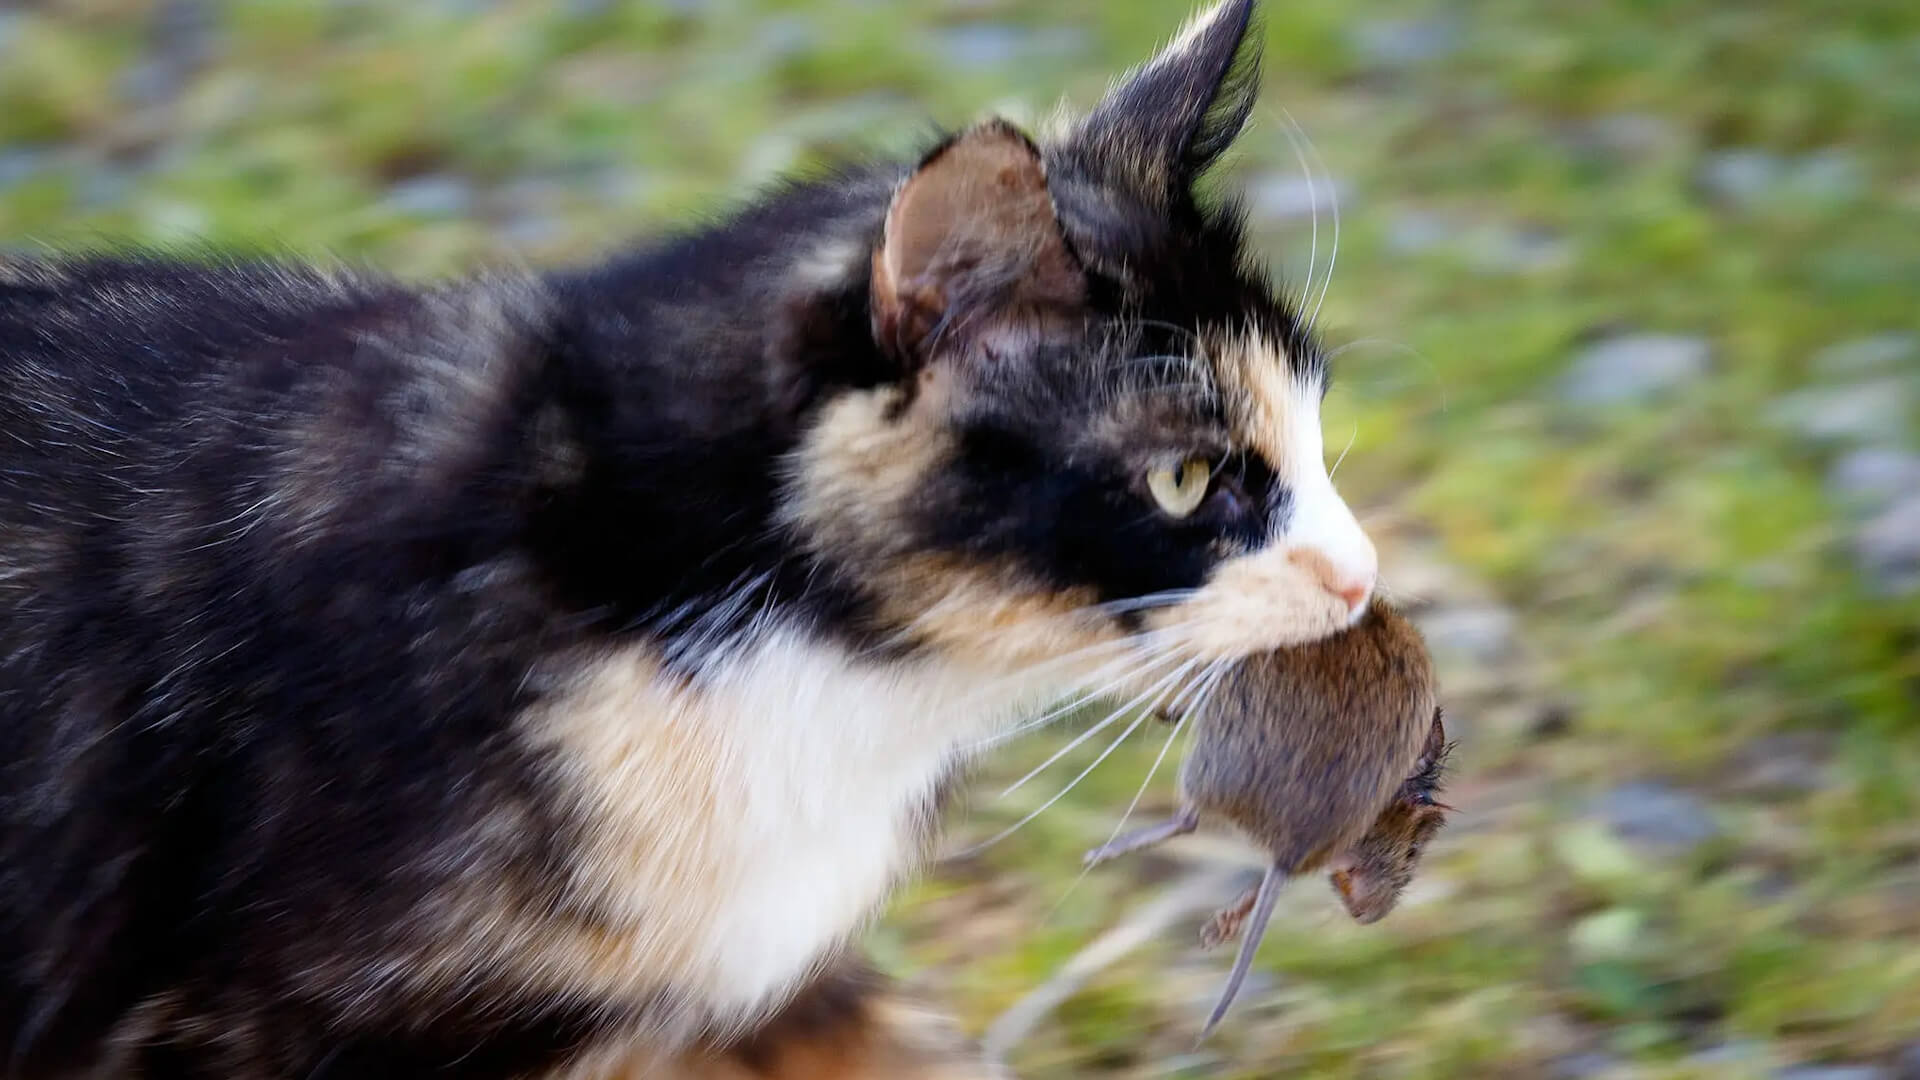 Cat carrying mouse